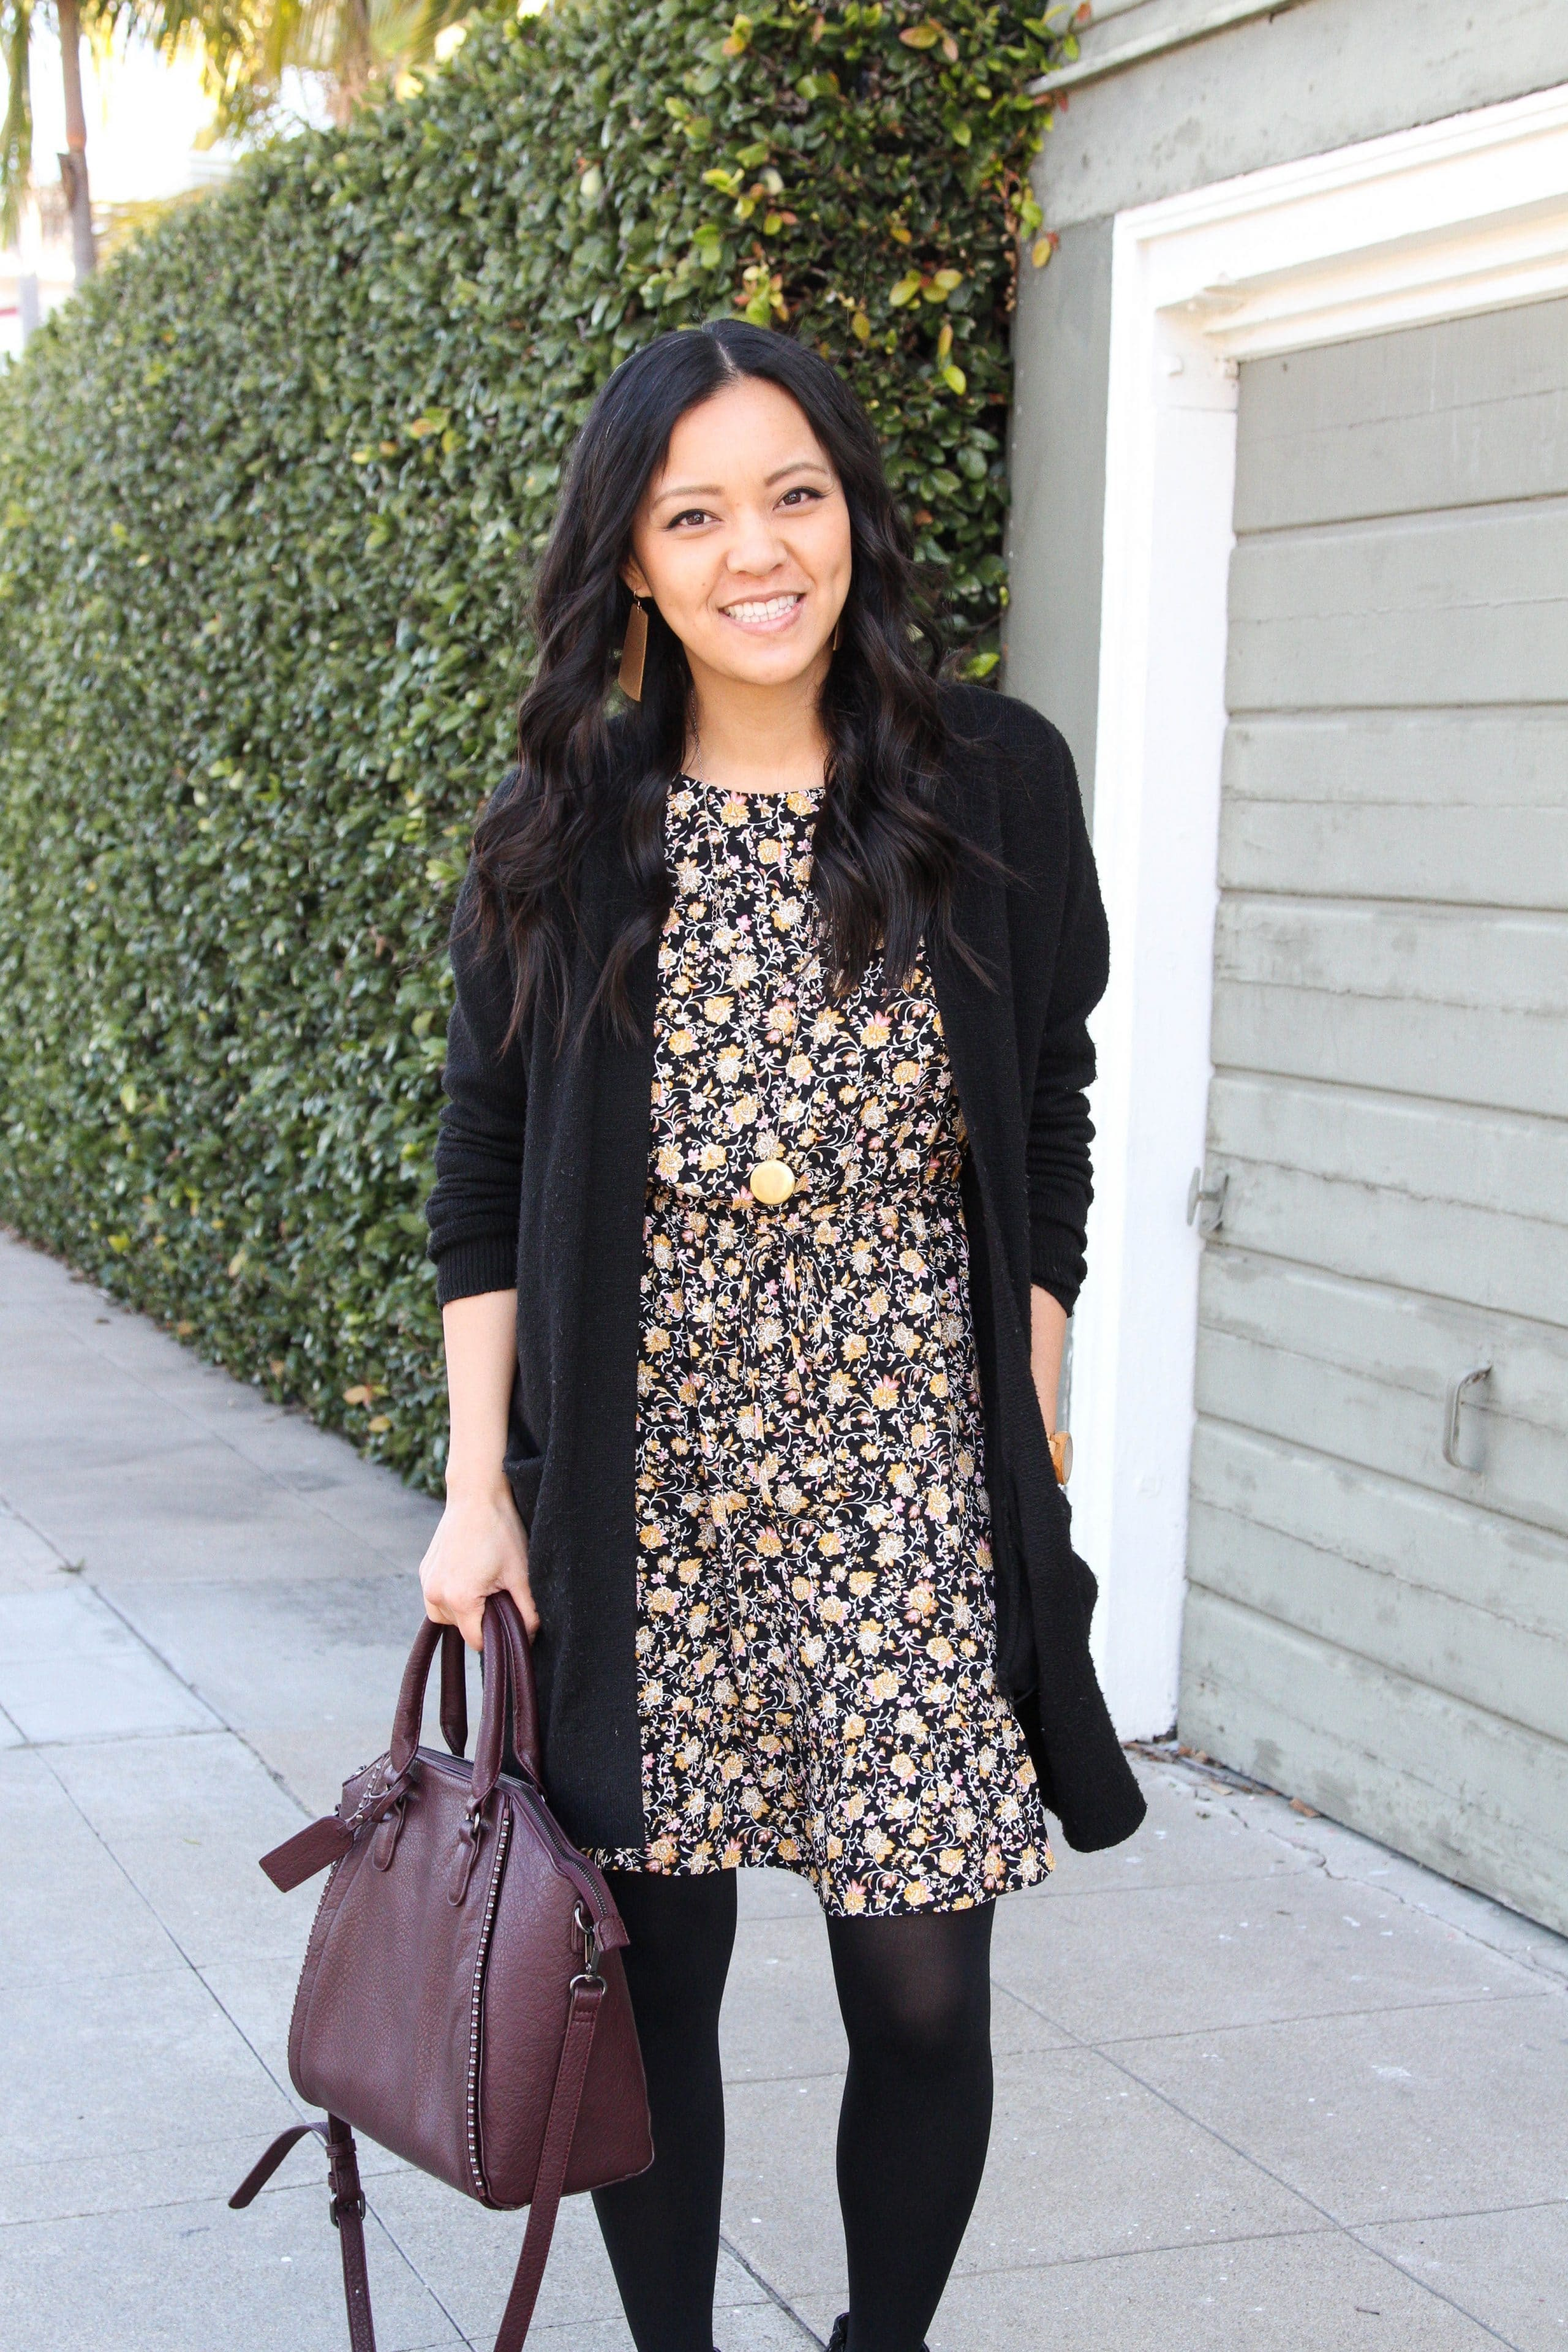 Back Cardigan + Booties + Maroon Bag + Black Floral Dress + Tights